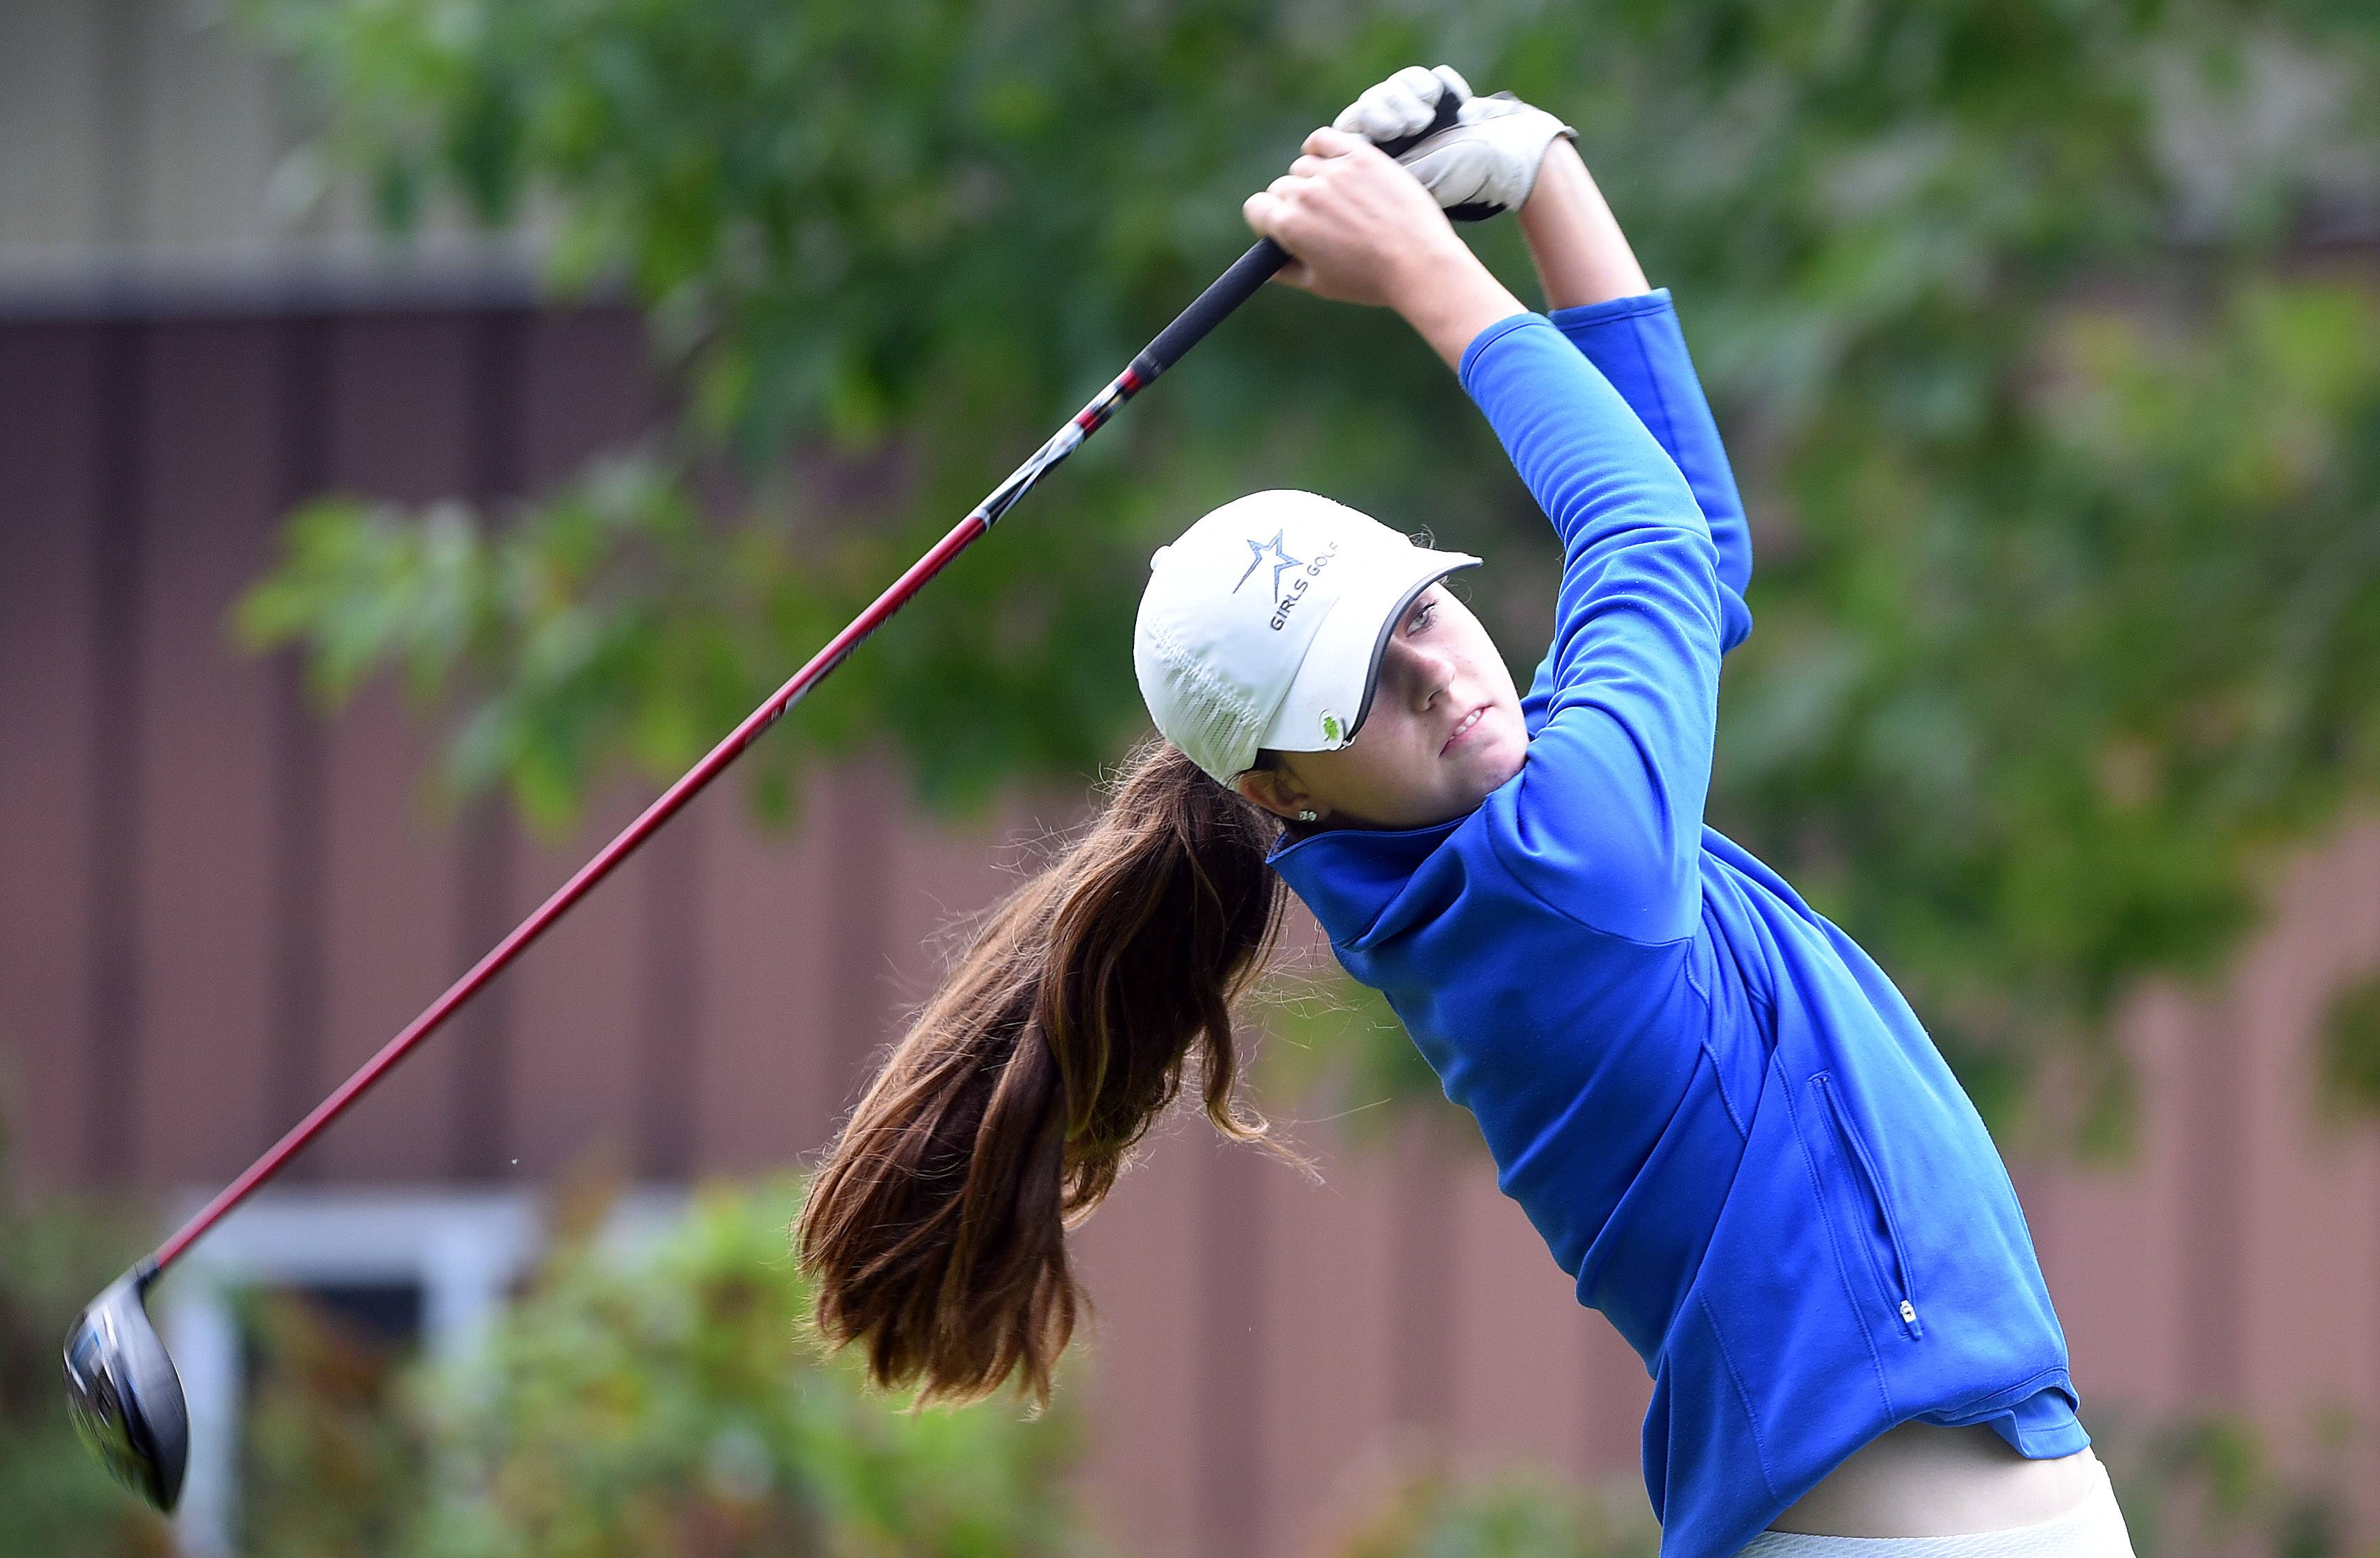 St. Charles North's Sarah Arnold tees off on the 3rd hole during the Burlington Central girls golf regional at Sycamore Golf Club Wednesday.